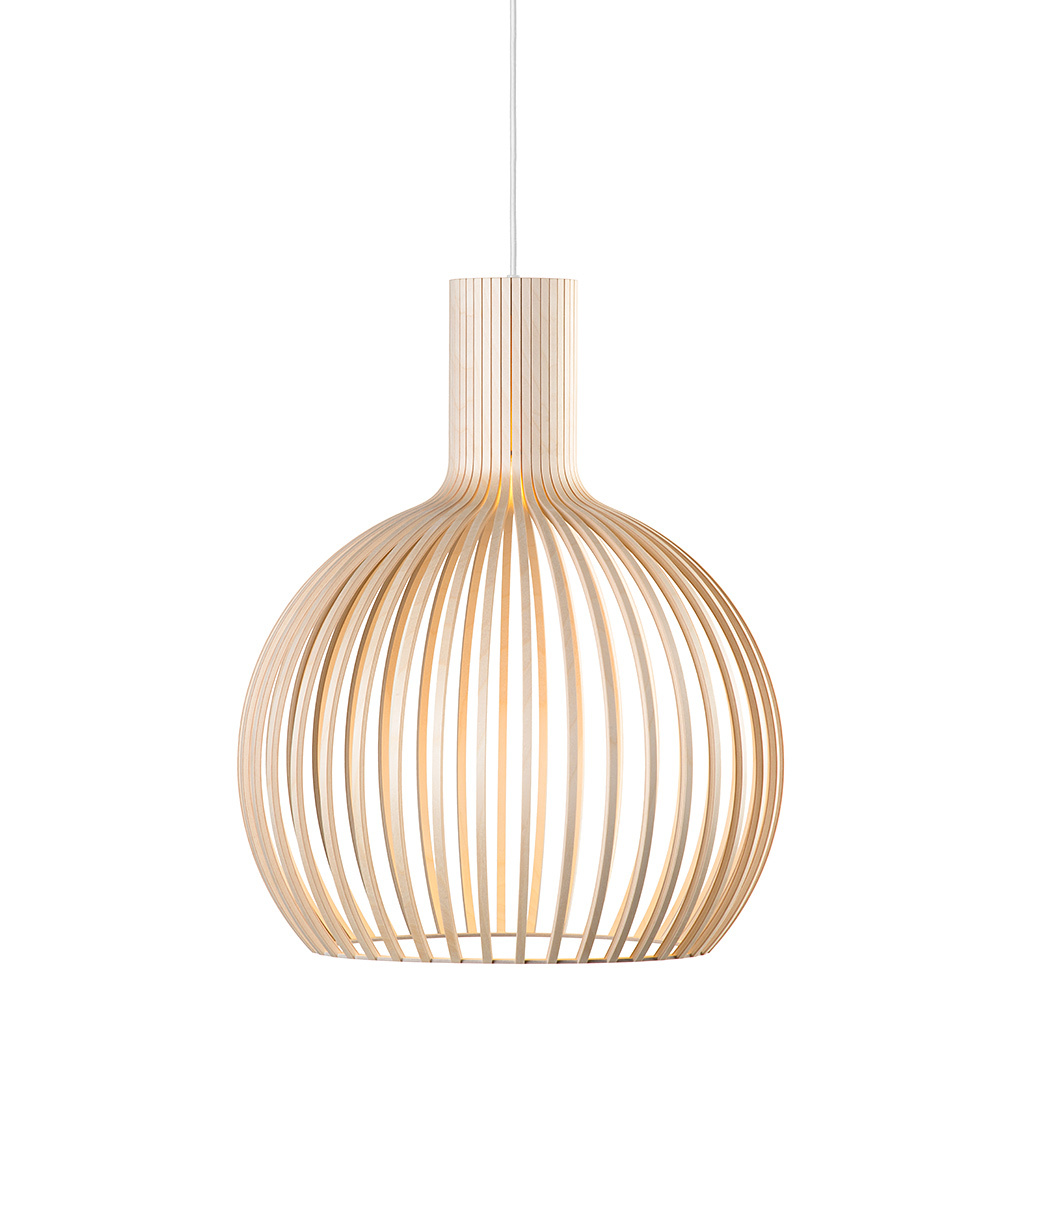 Octo Small 4241 pendant lamp color birch